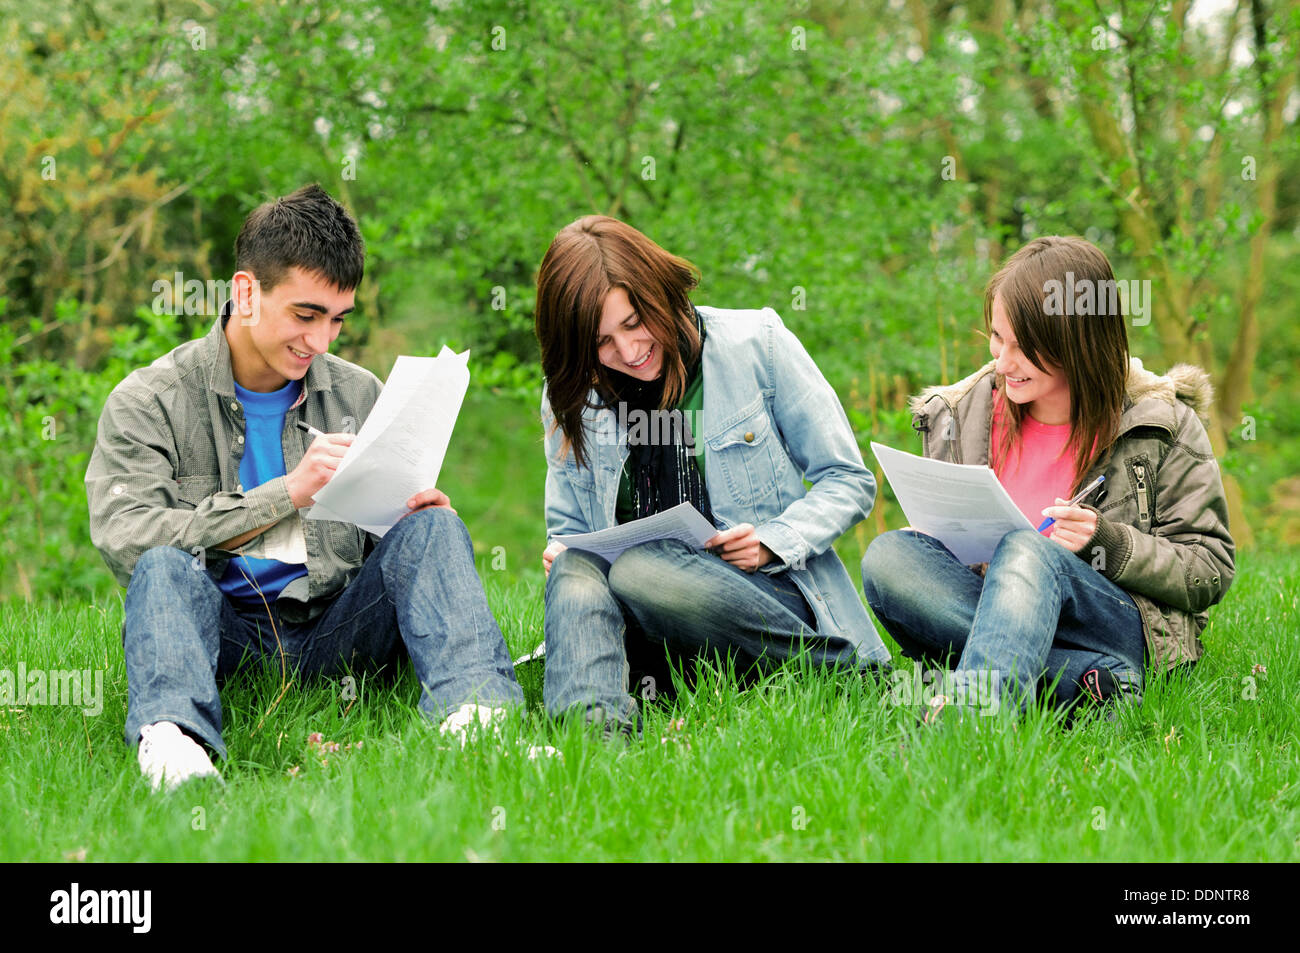 Three high school students learning together outdoor - Stock Image